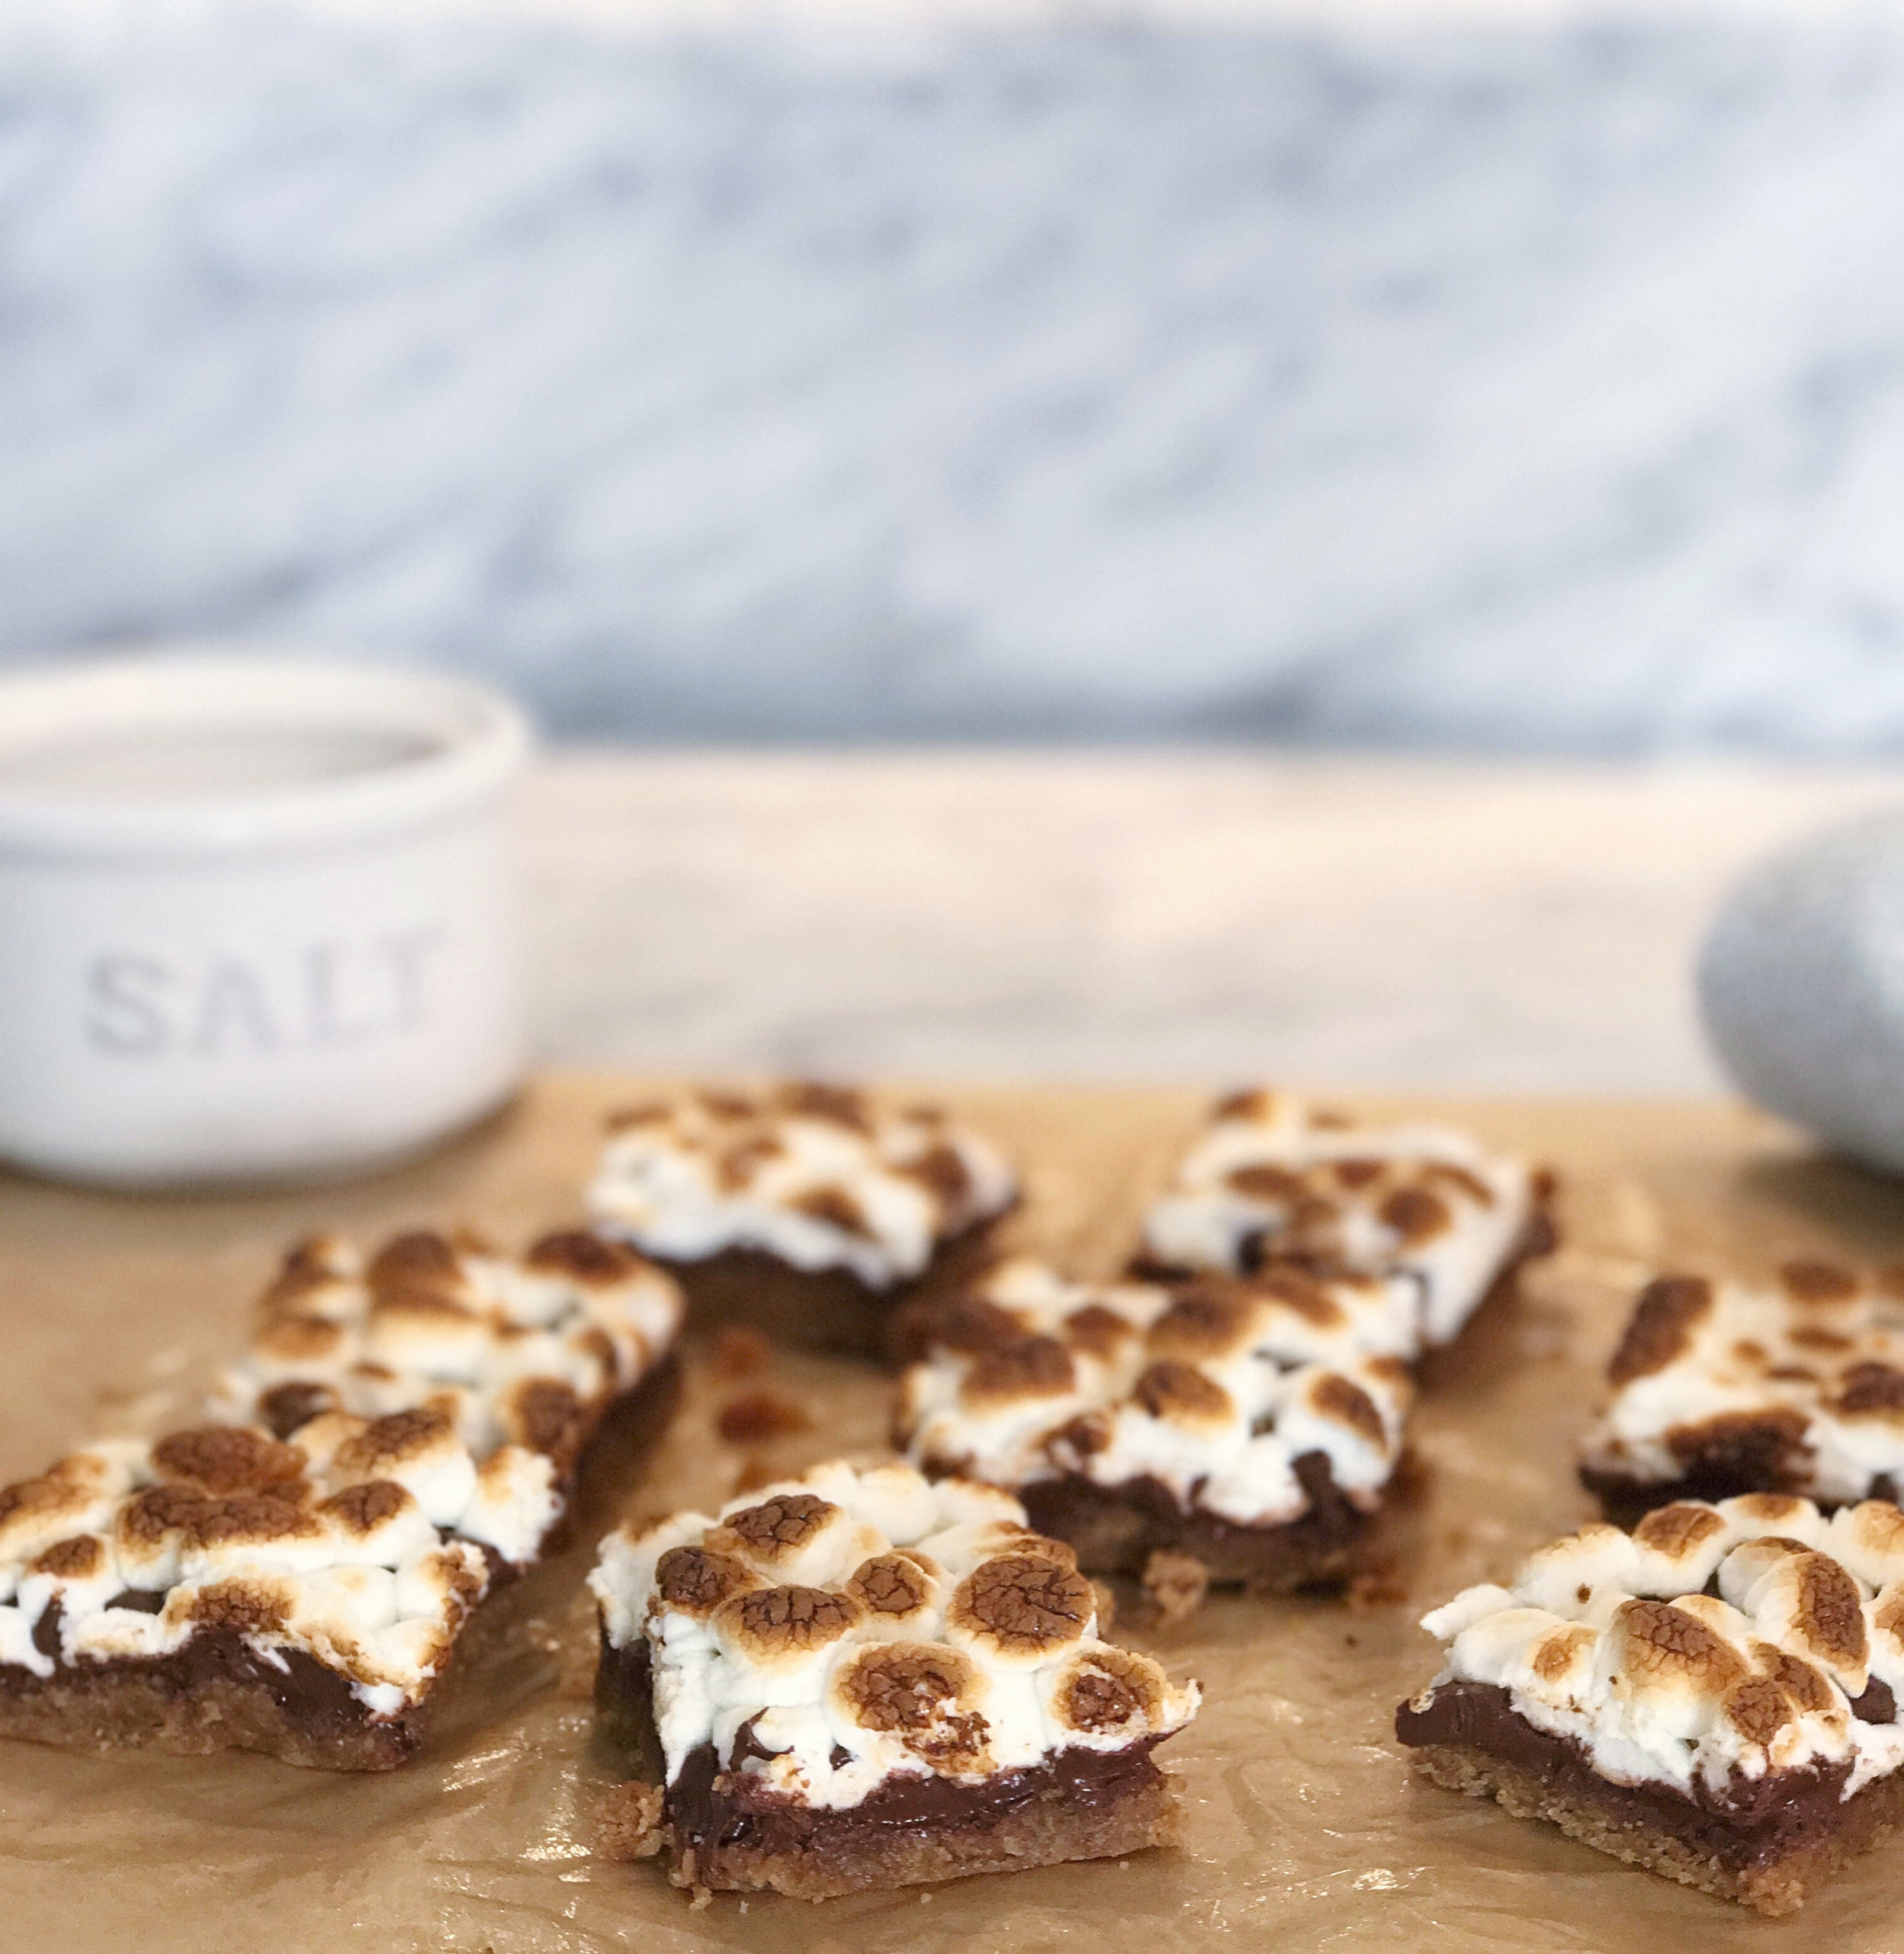 SALTED S'MORES BARS - HEAVEN IN A PAN. (NOT EVEN BEING DRAMATIC)